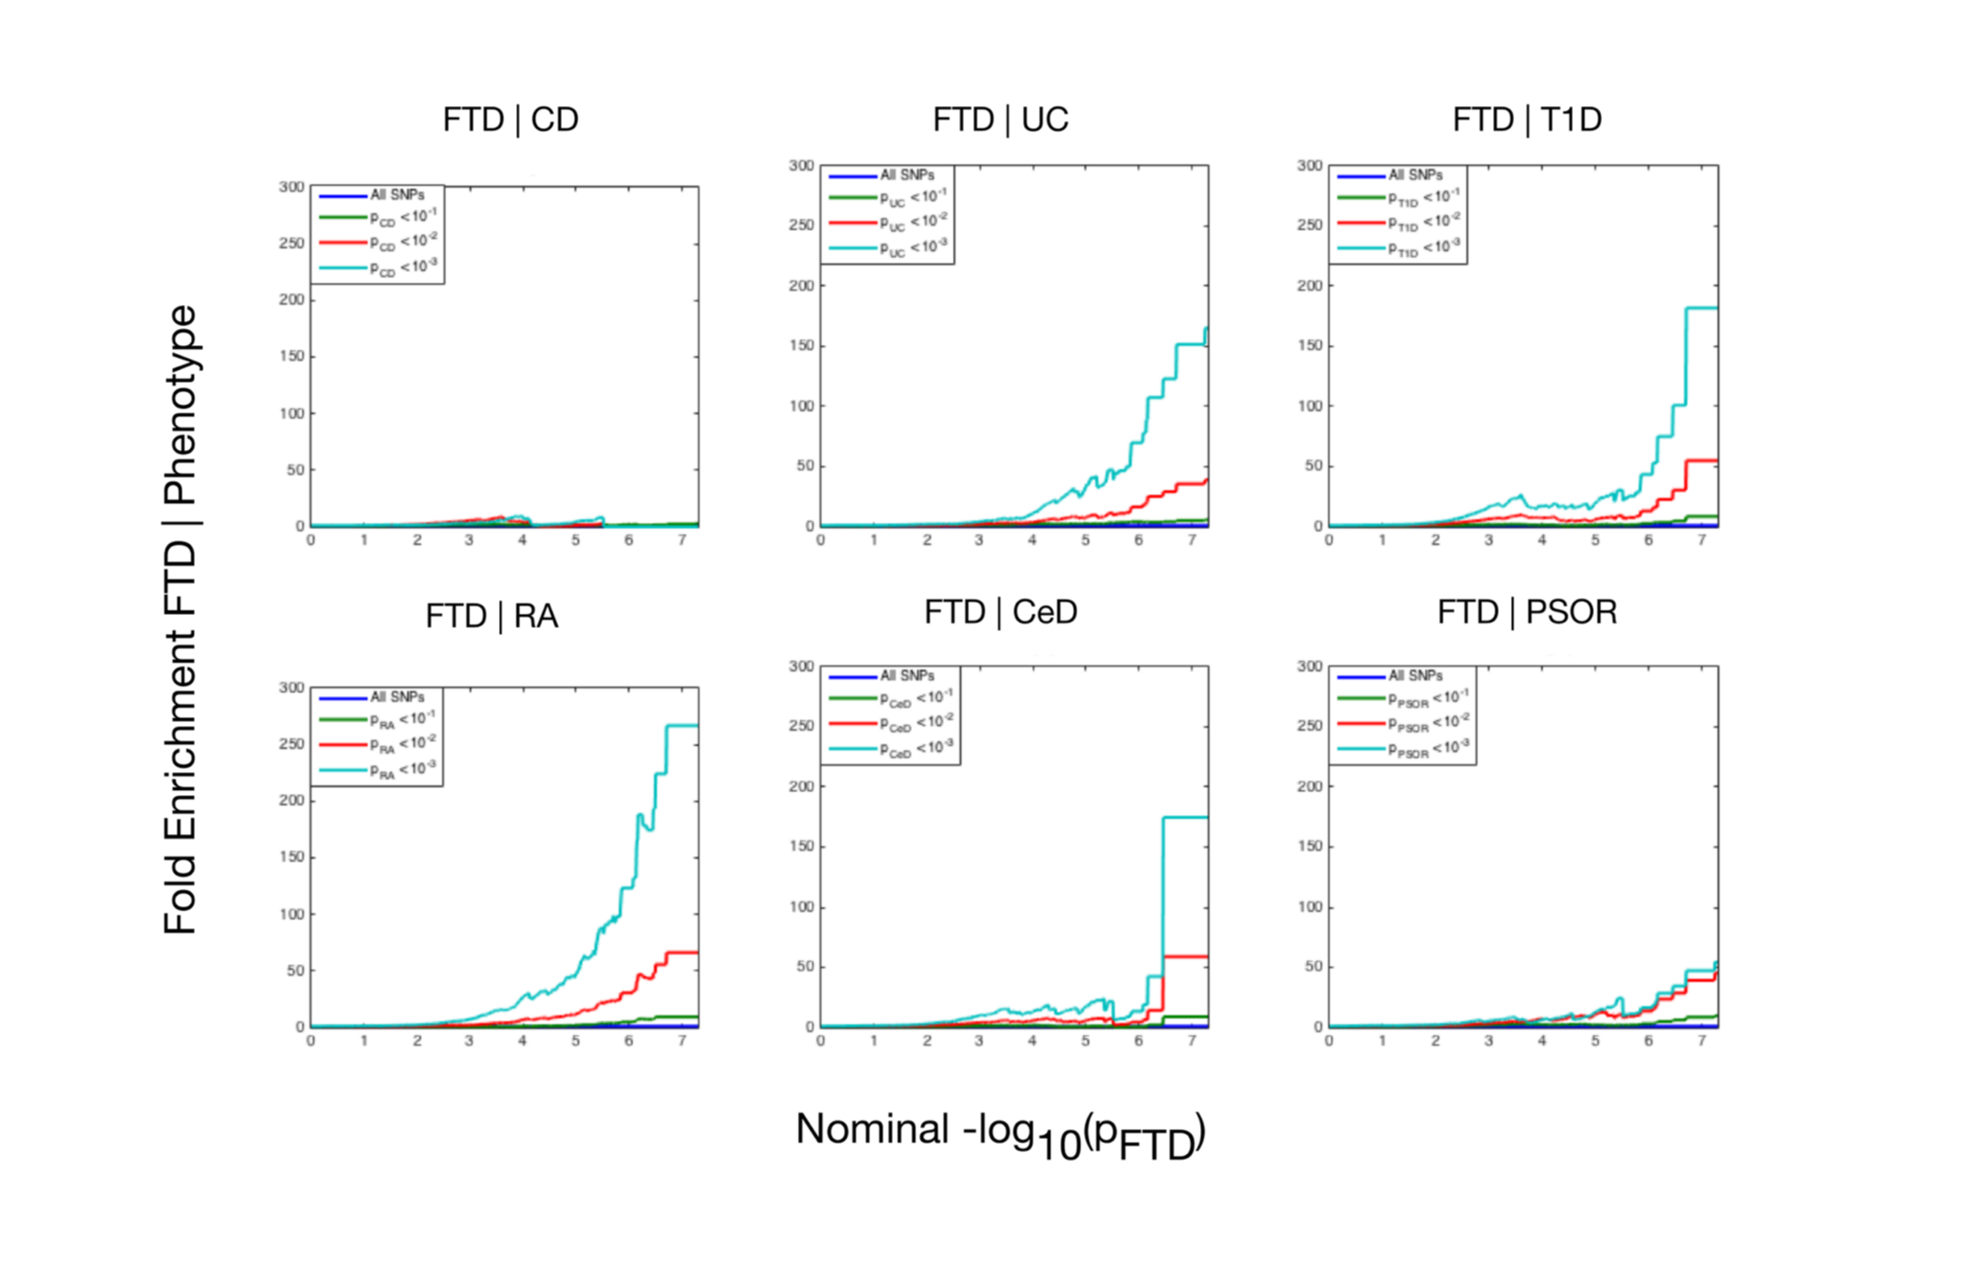 Fold enrichment plots of enrichment versus nominal −log<sub>10</sub>(<i>p</i>)-values (corrected for inflation) in frontotemporal dementia (FTD) below the standard genome-wide association study threshold of <i>p</i> &lt; 5 × 10<sup>−8</sup> as a function of significance of association with 6 immune-mediated diseases.